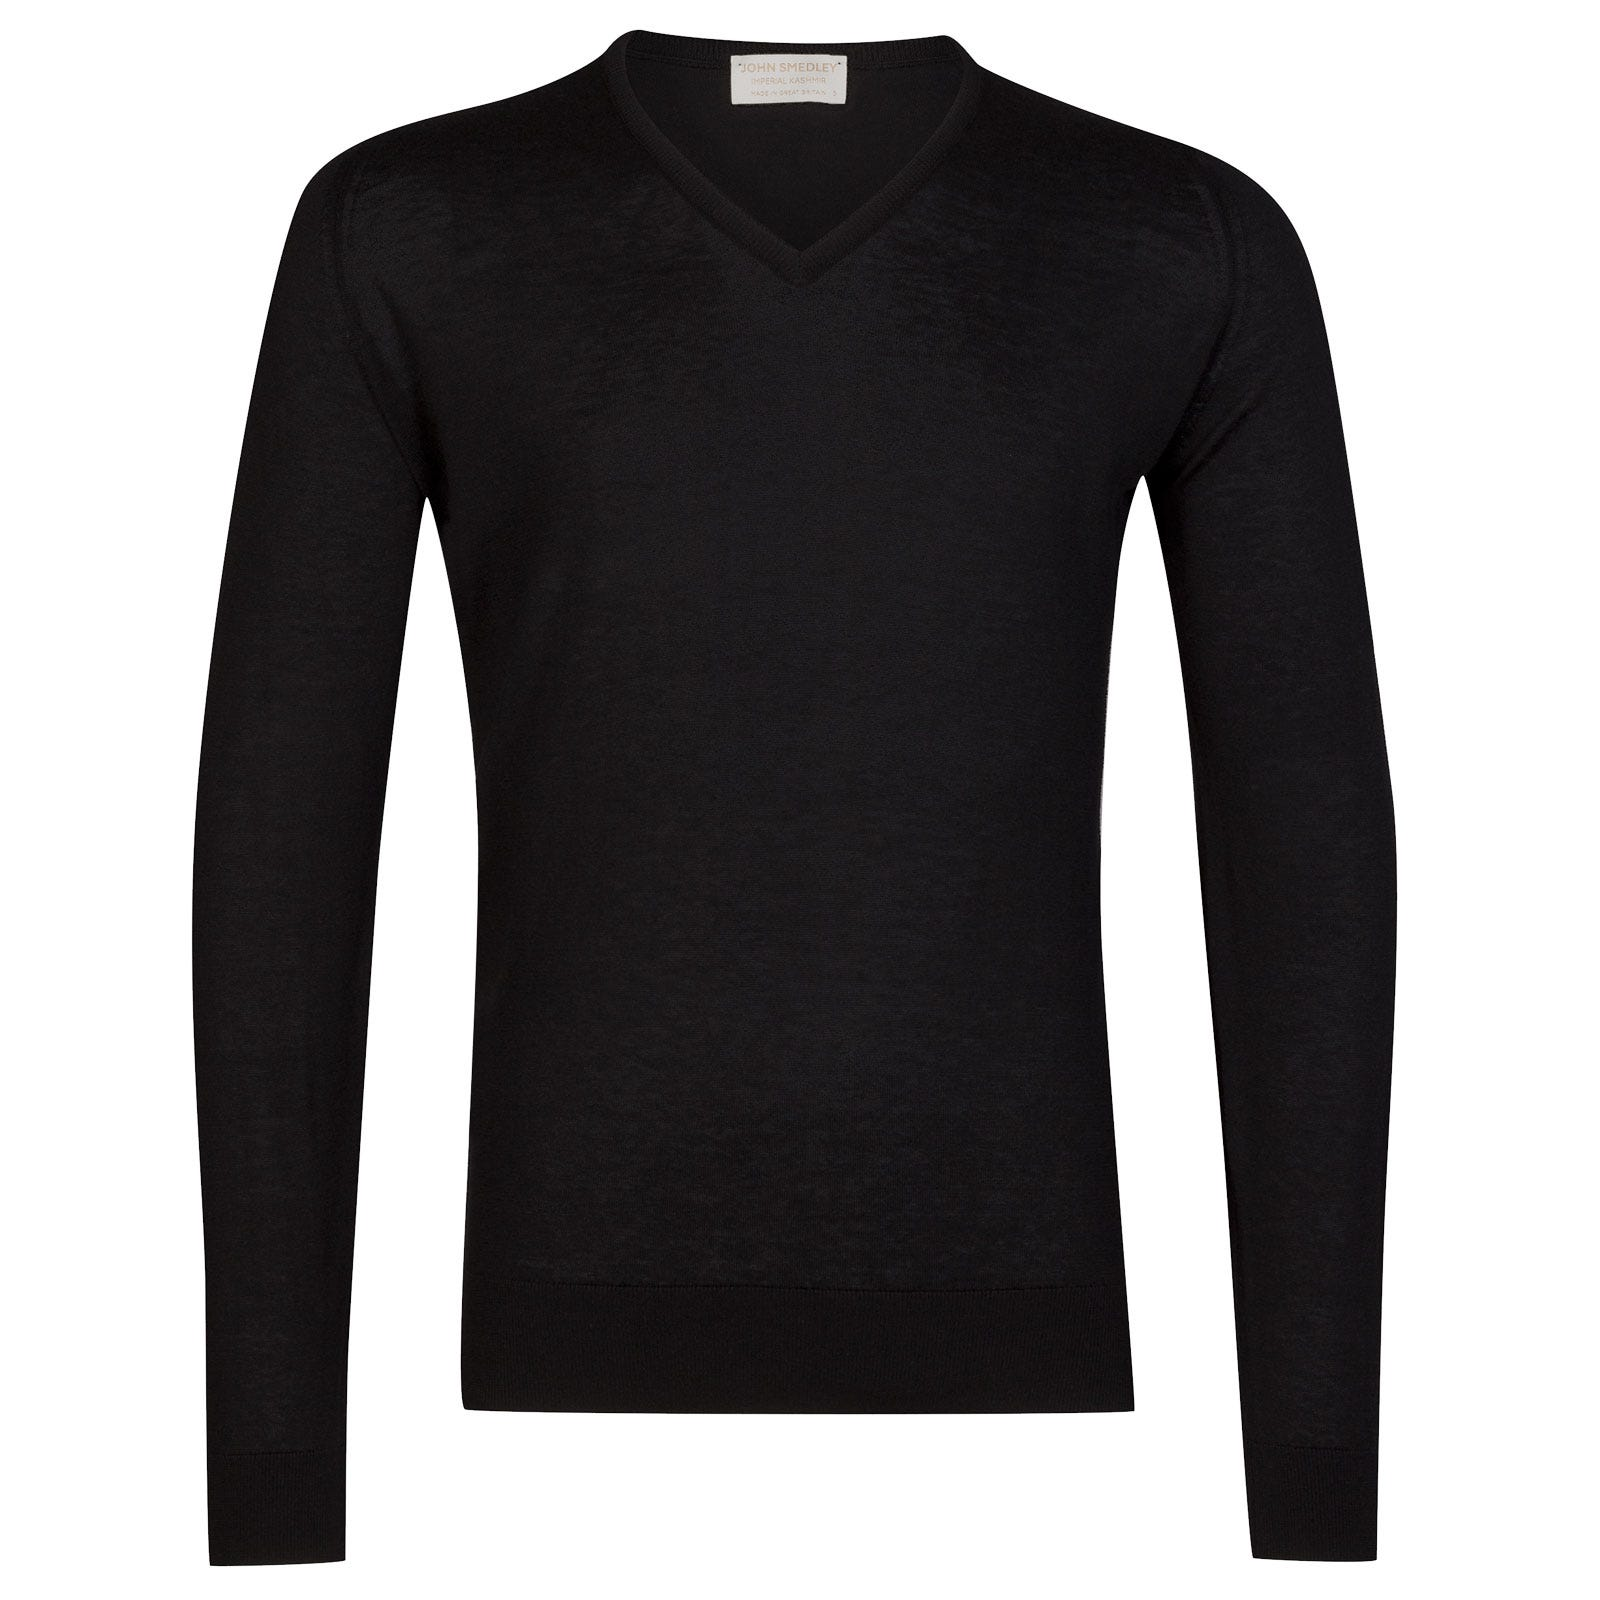 John Smedley Dayton Sea Island Cotton and Cashmere Pullover in Black-M